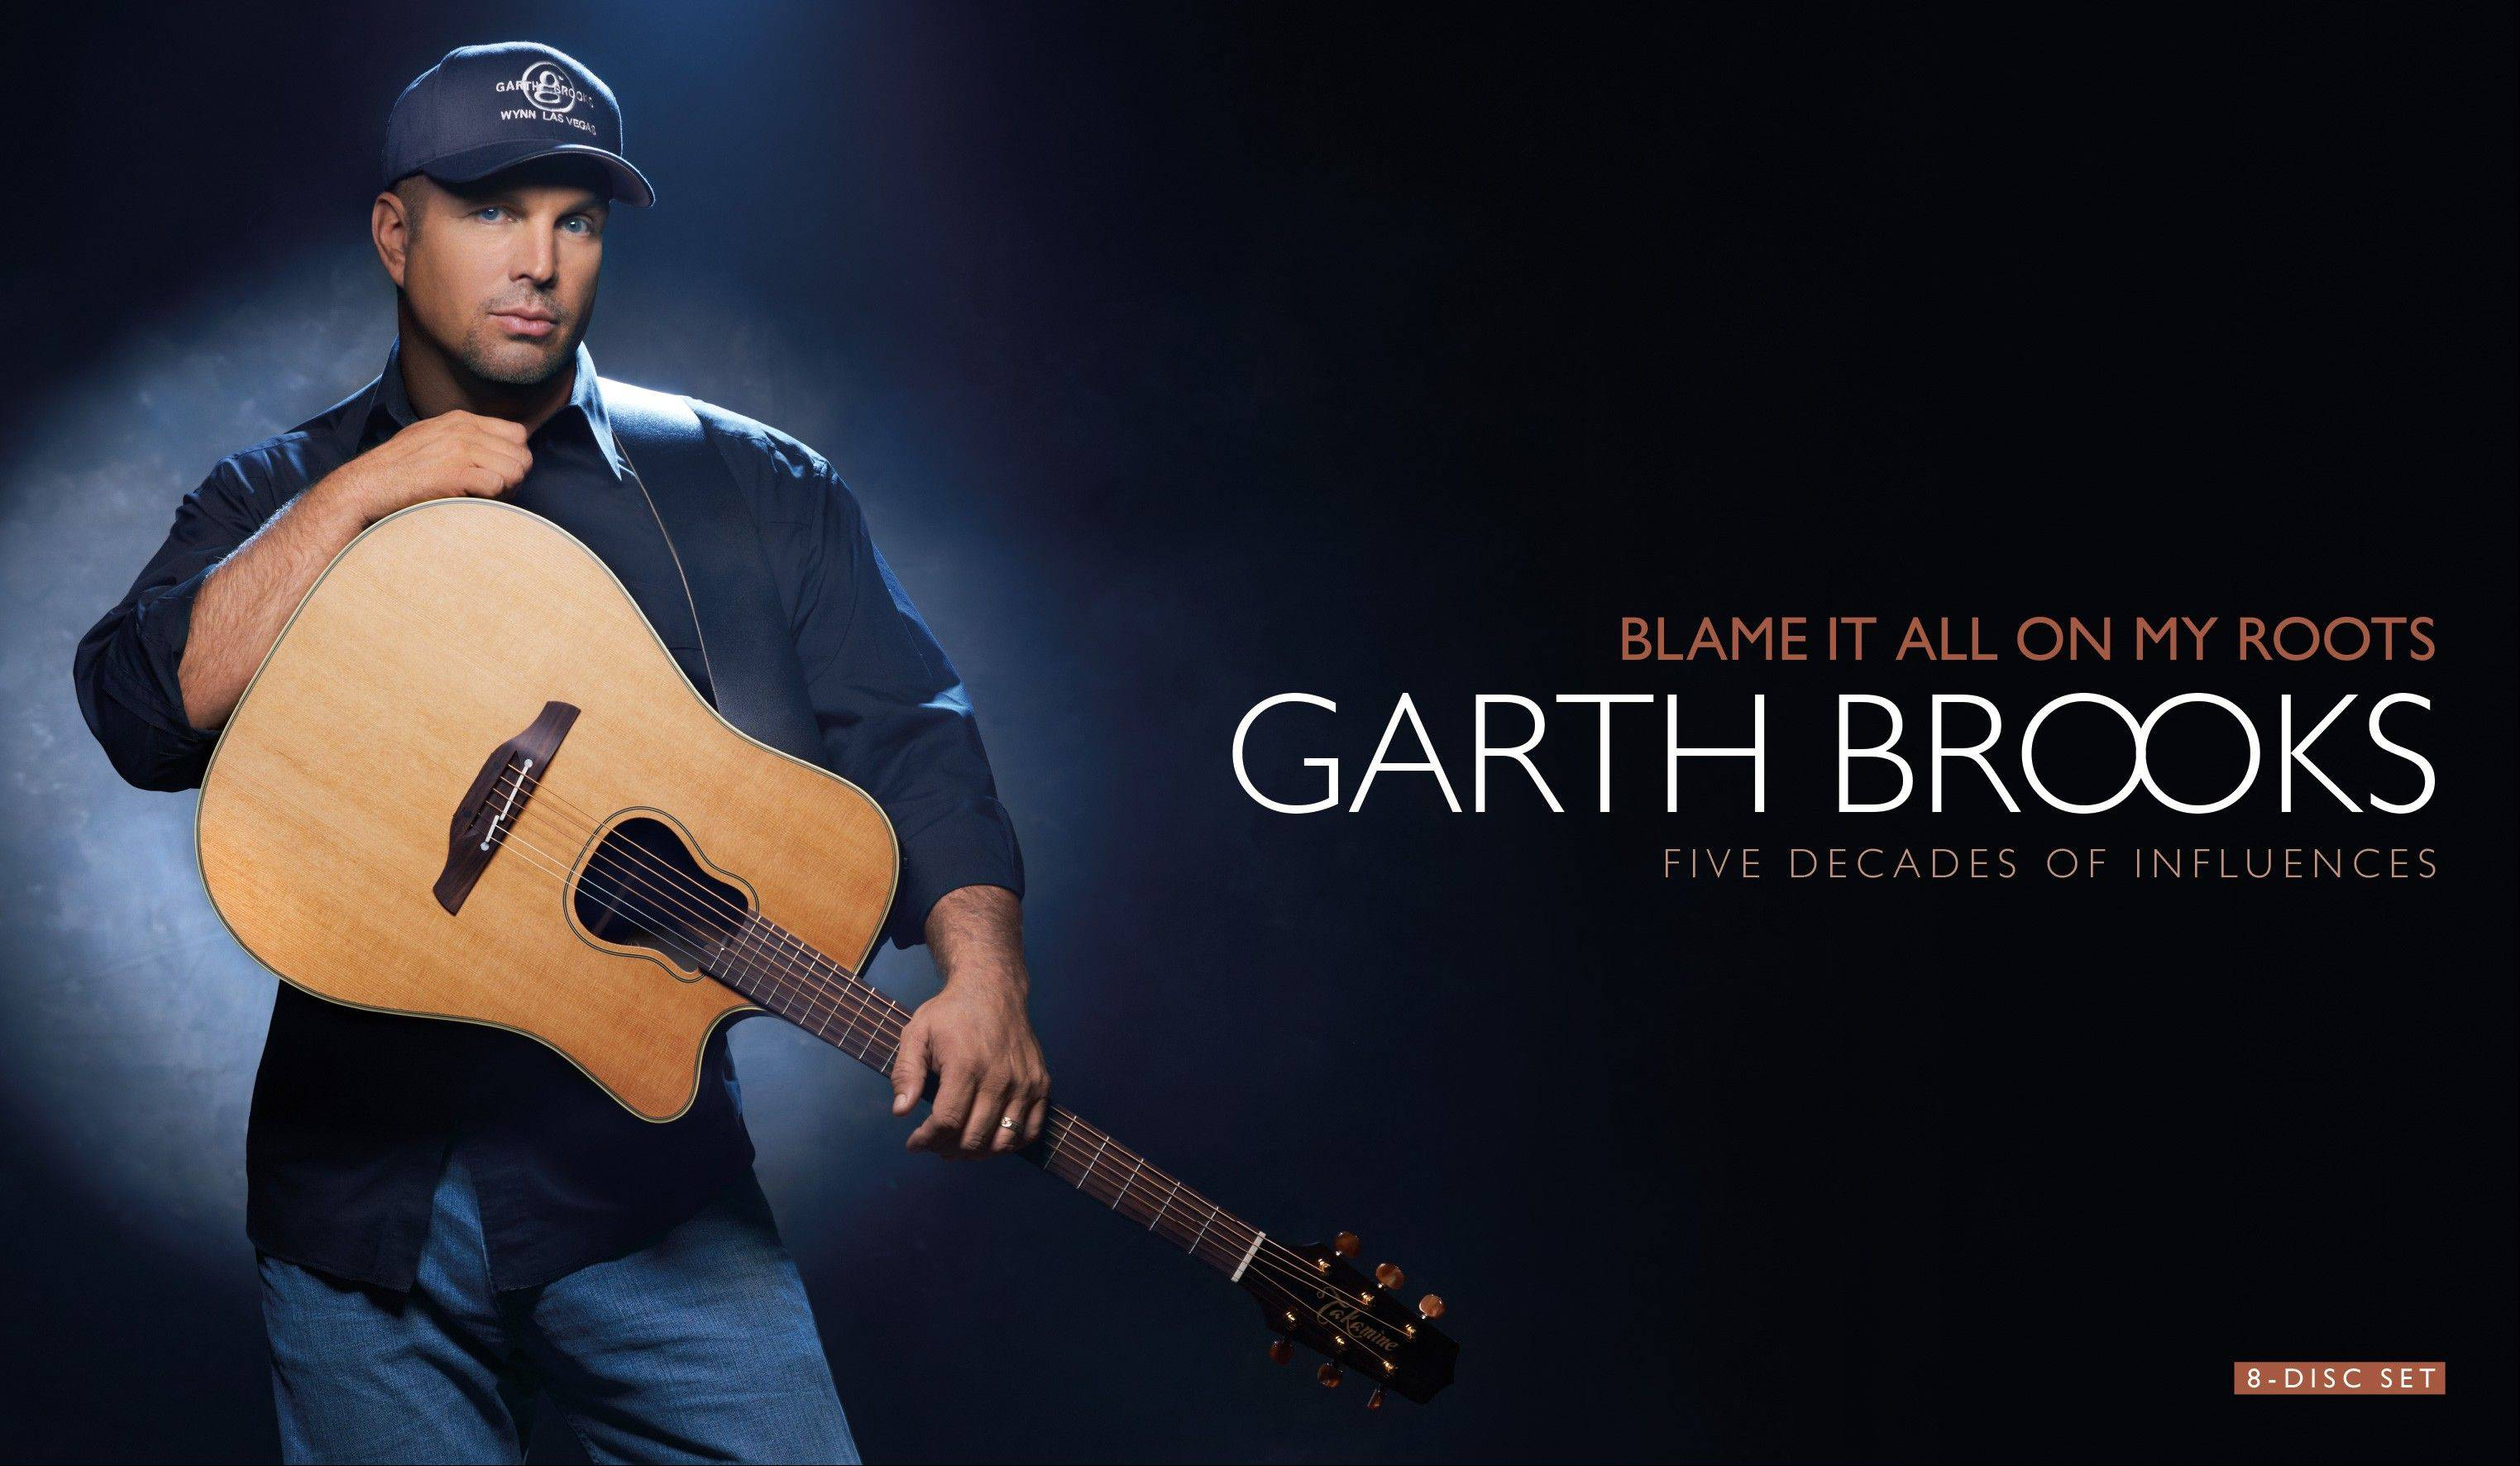 Garth Brooks just released the 8-disc box set �Blame It All on My Roots.�